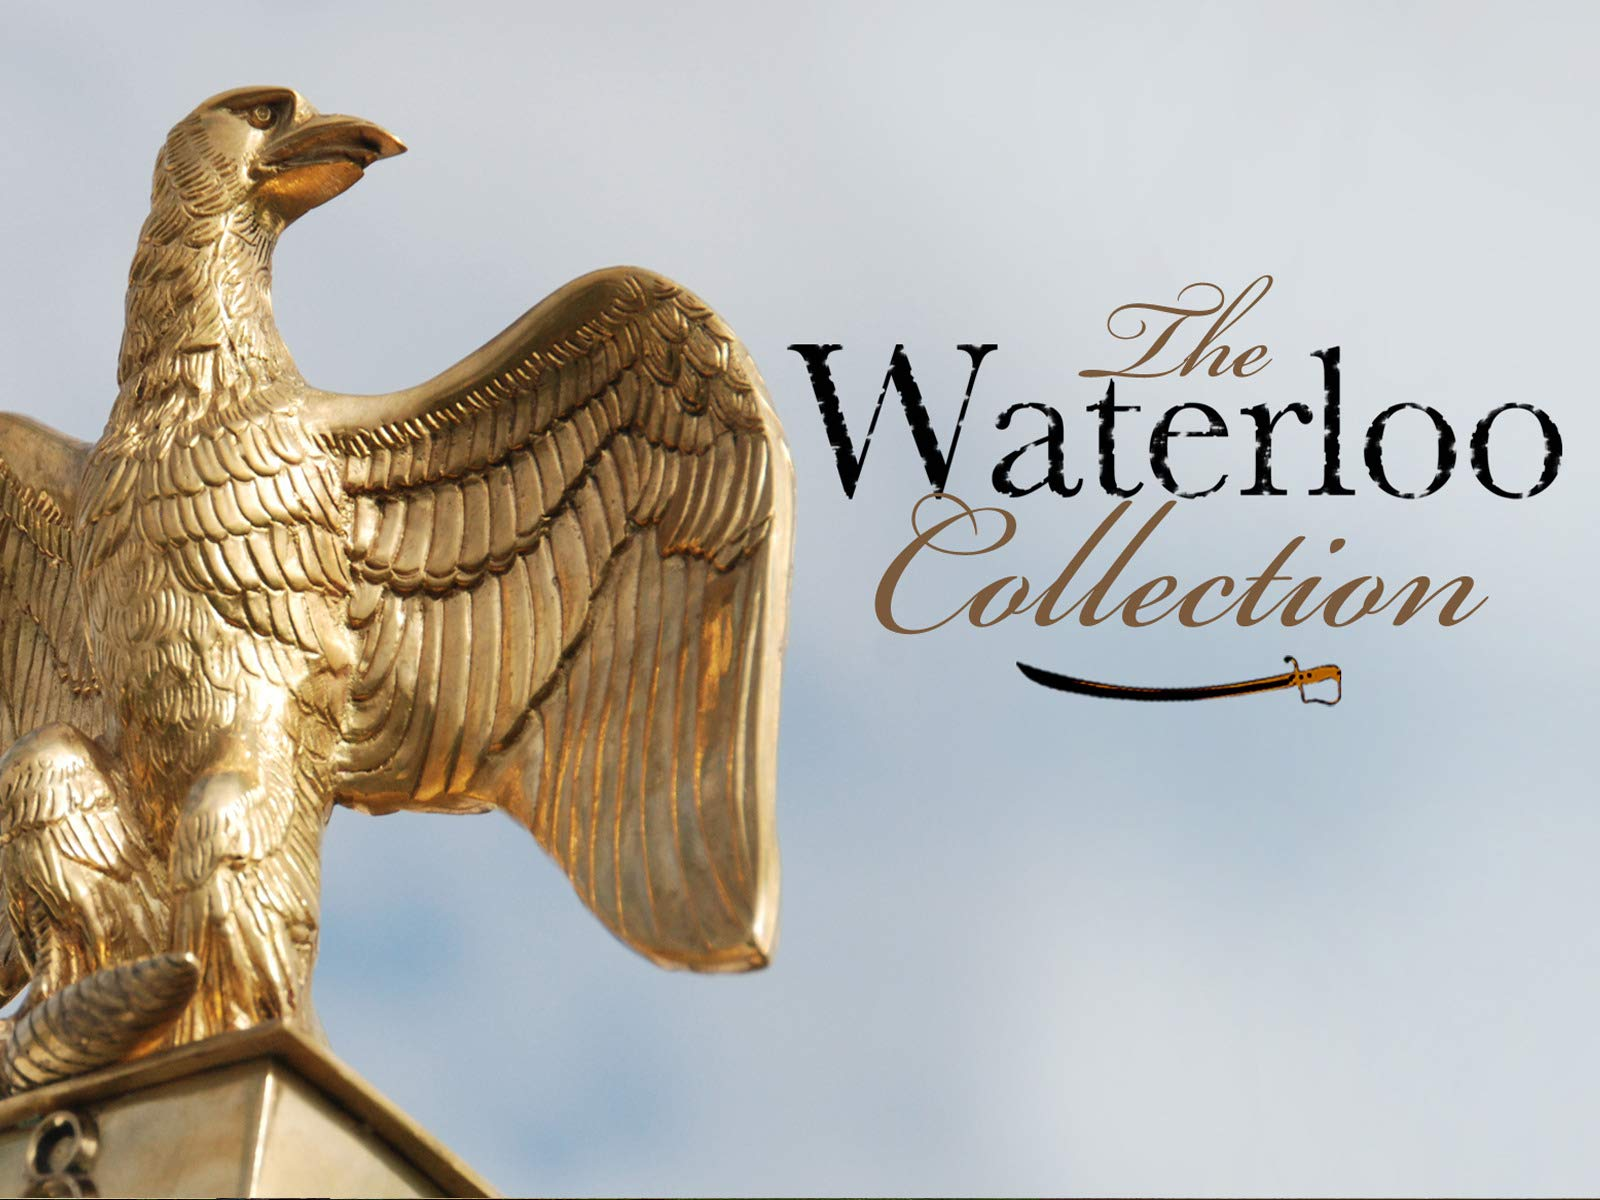 The Waterloo Collection